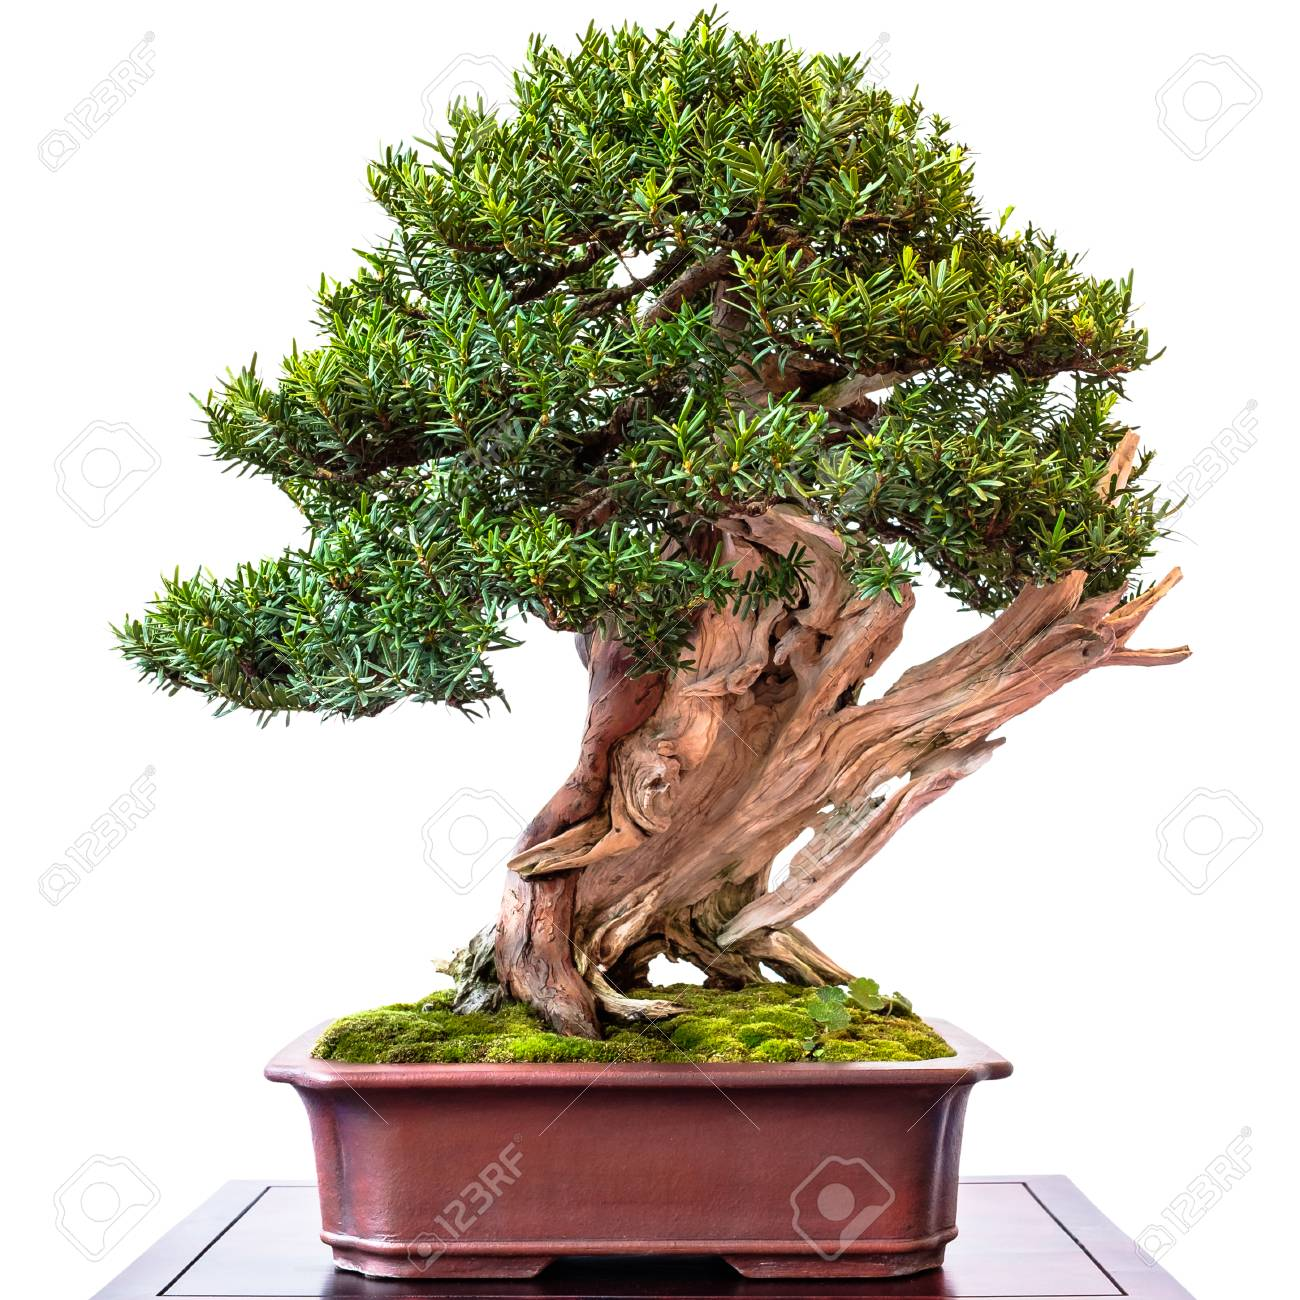 Conifer Yew Taxus Cuspidata As Bonsai Tree With Old Deadwood Stock Photo Picture And Royalty Free Image Image 90460508